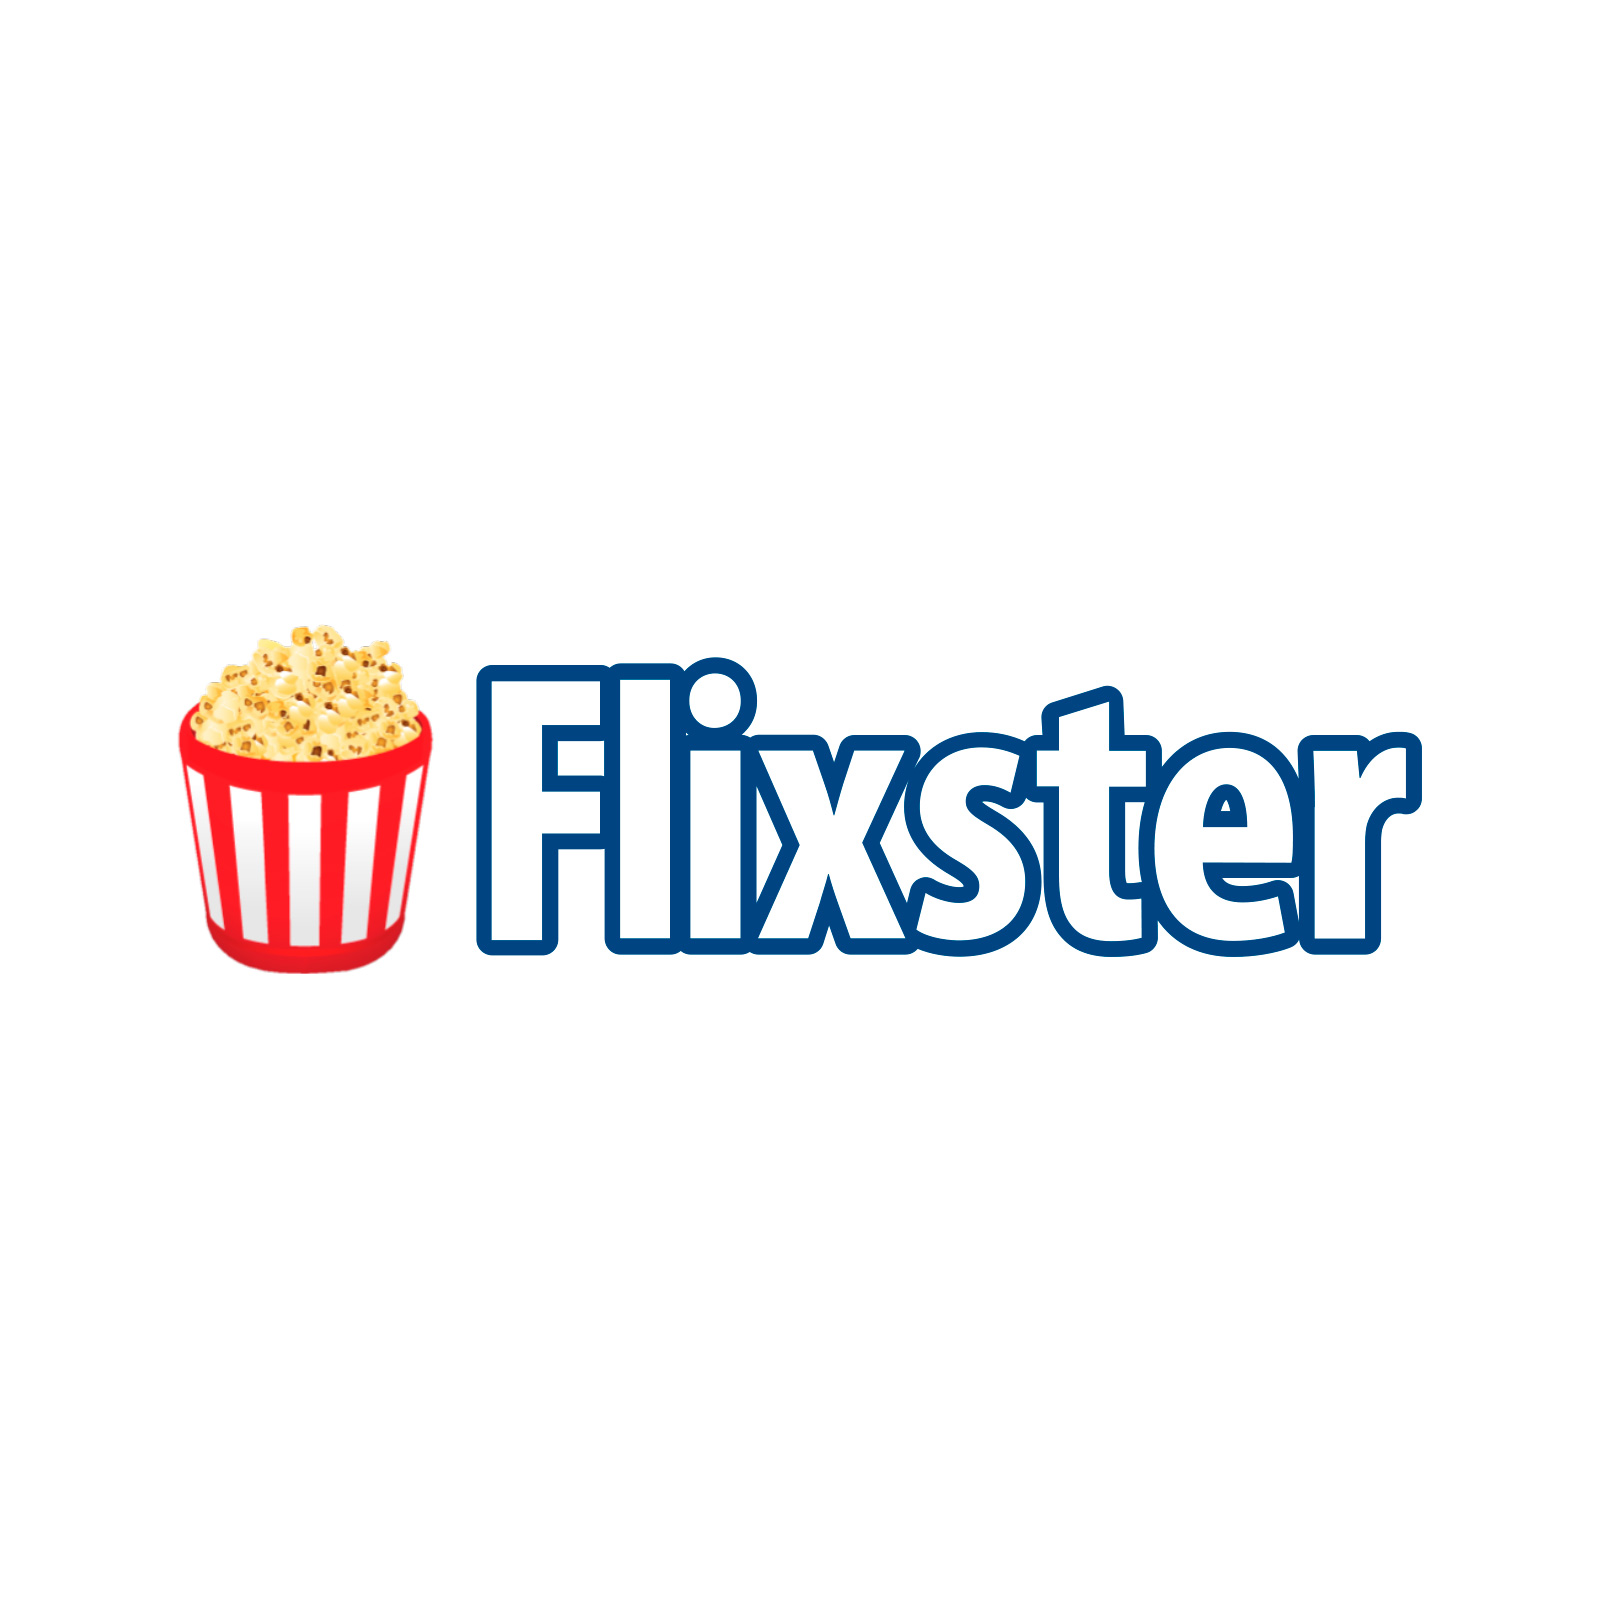 This is an American social networking site for people who love movies and want to connect with like-minded people by sharing their movie reviews and ratings. Its users are likely to learn about movies and get information about new movies.